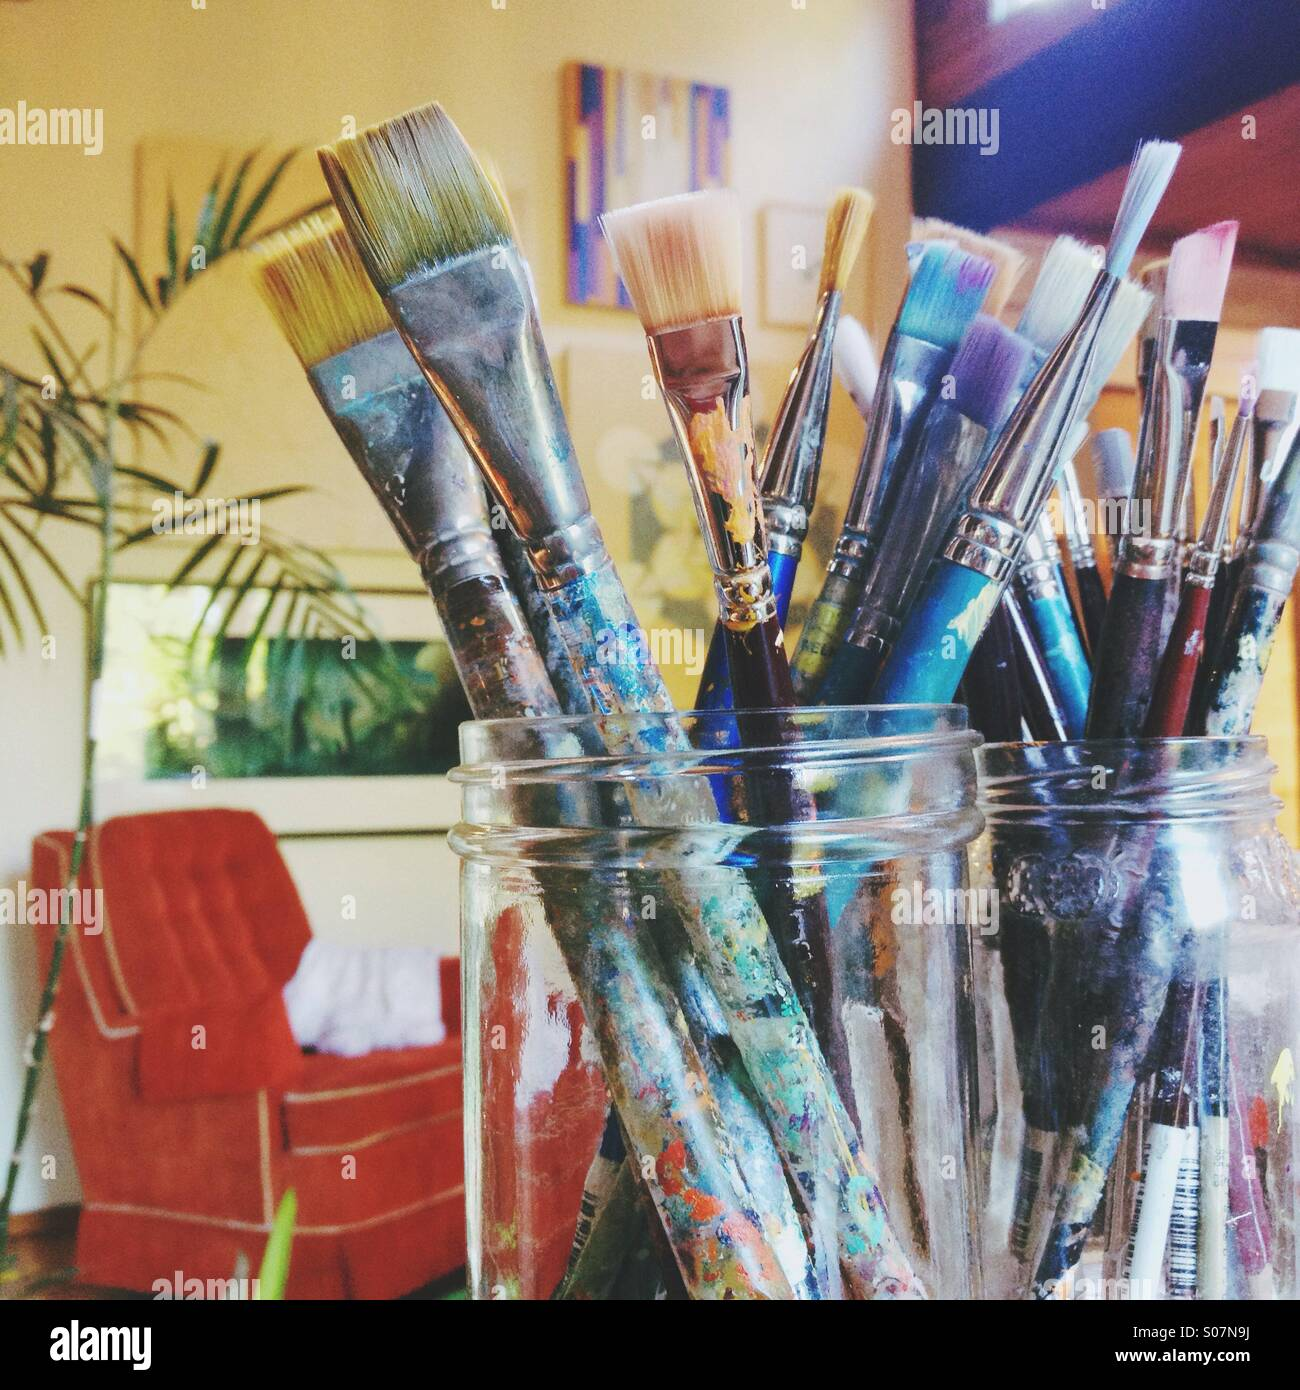 Close up of artist's paintbrushes in jars with artsy bohemian vintage background. - Stock Image